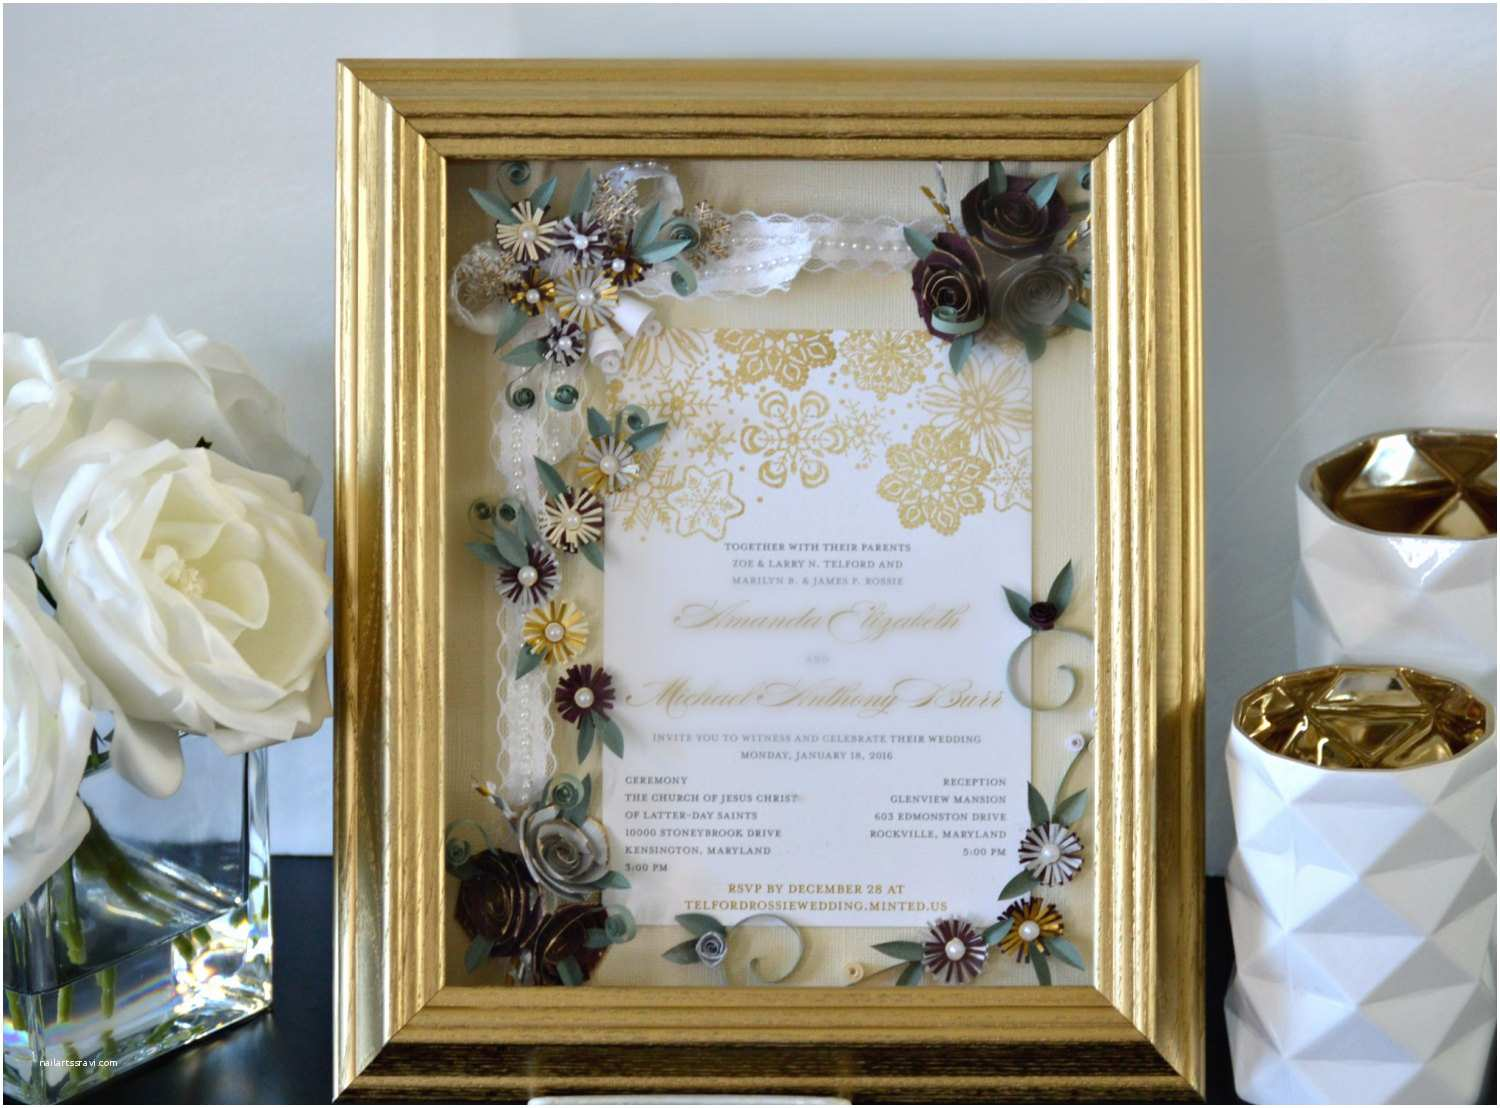 Wedding Invitation Frame Custom Wedding Invitation Framed Wedding